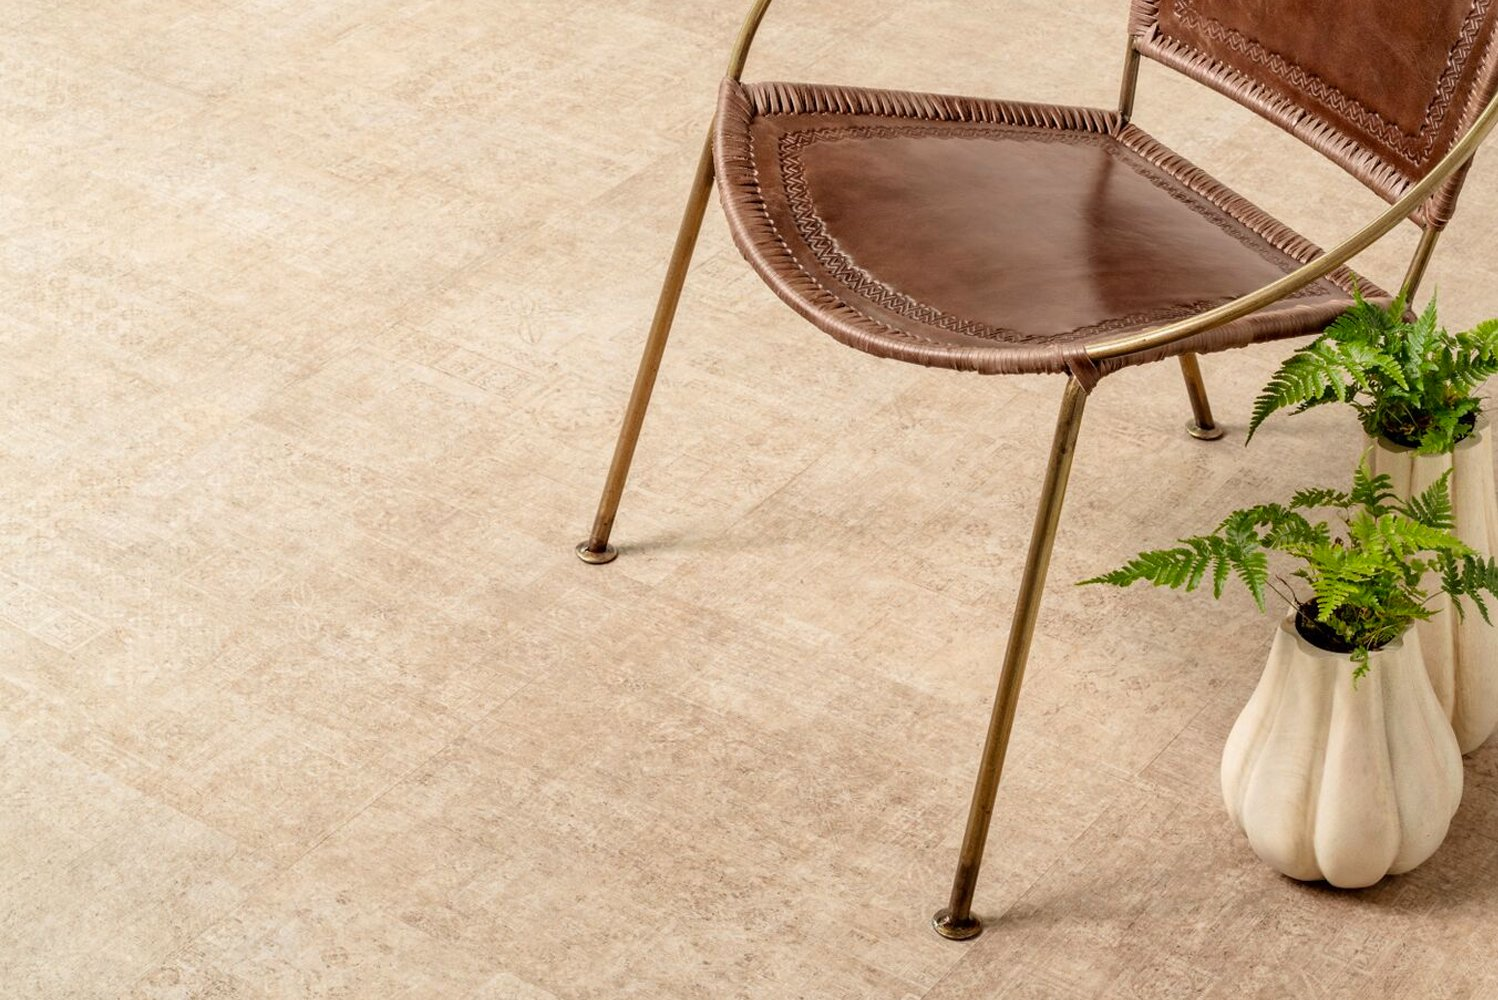 Introducing Storri, the latest Luxury Vinyl Tile (LVT) collection from Parterre Flooring.